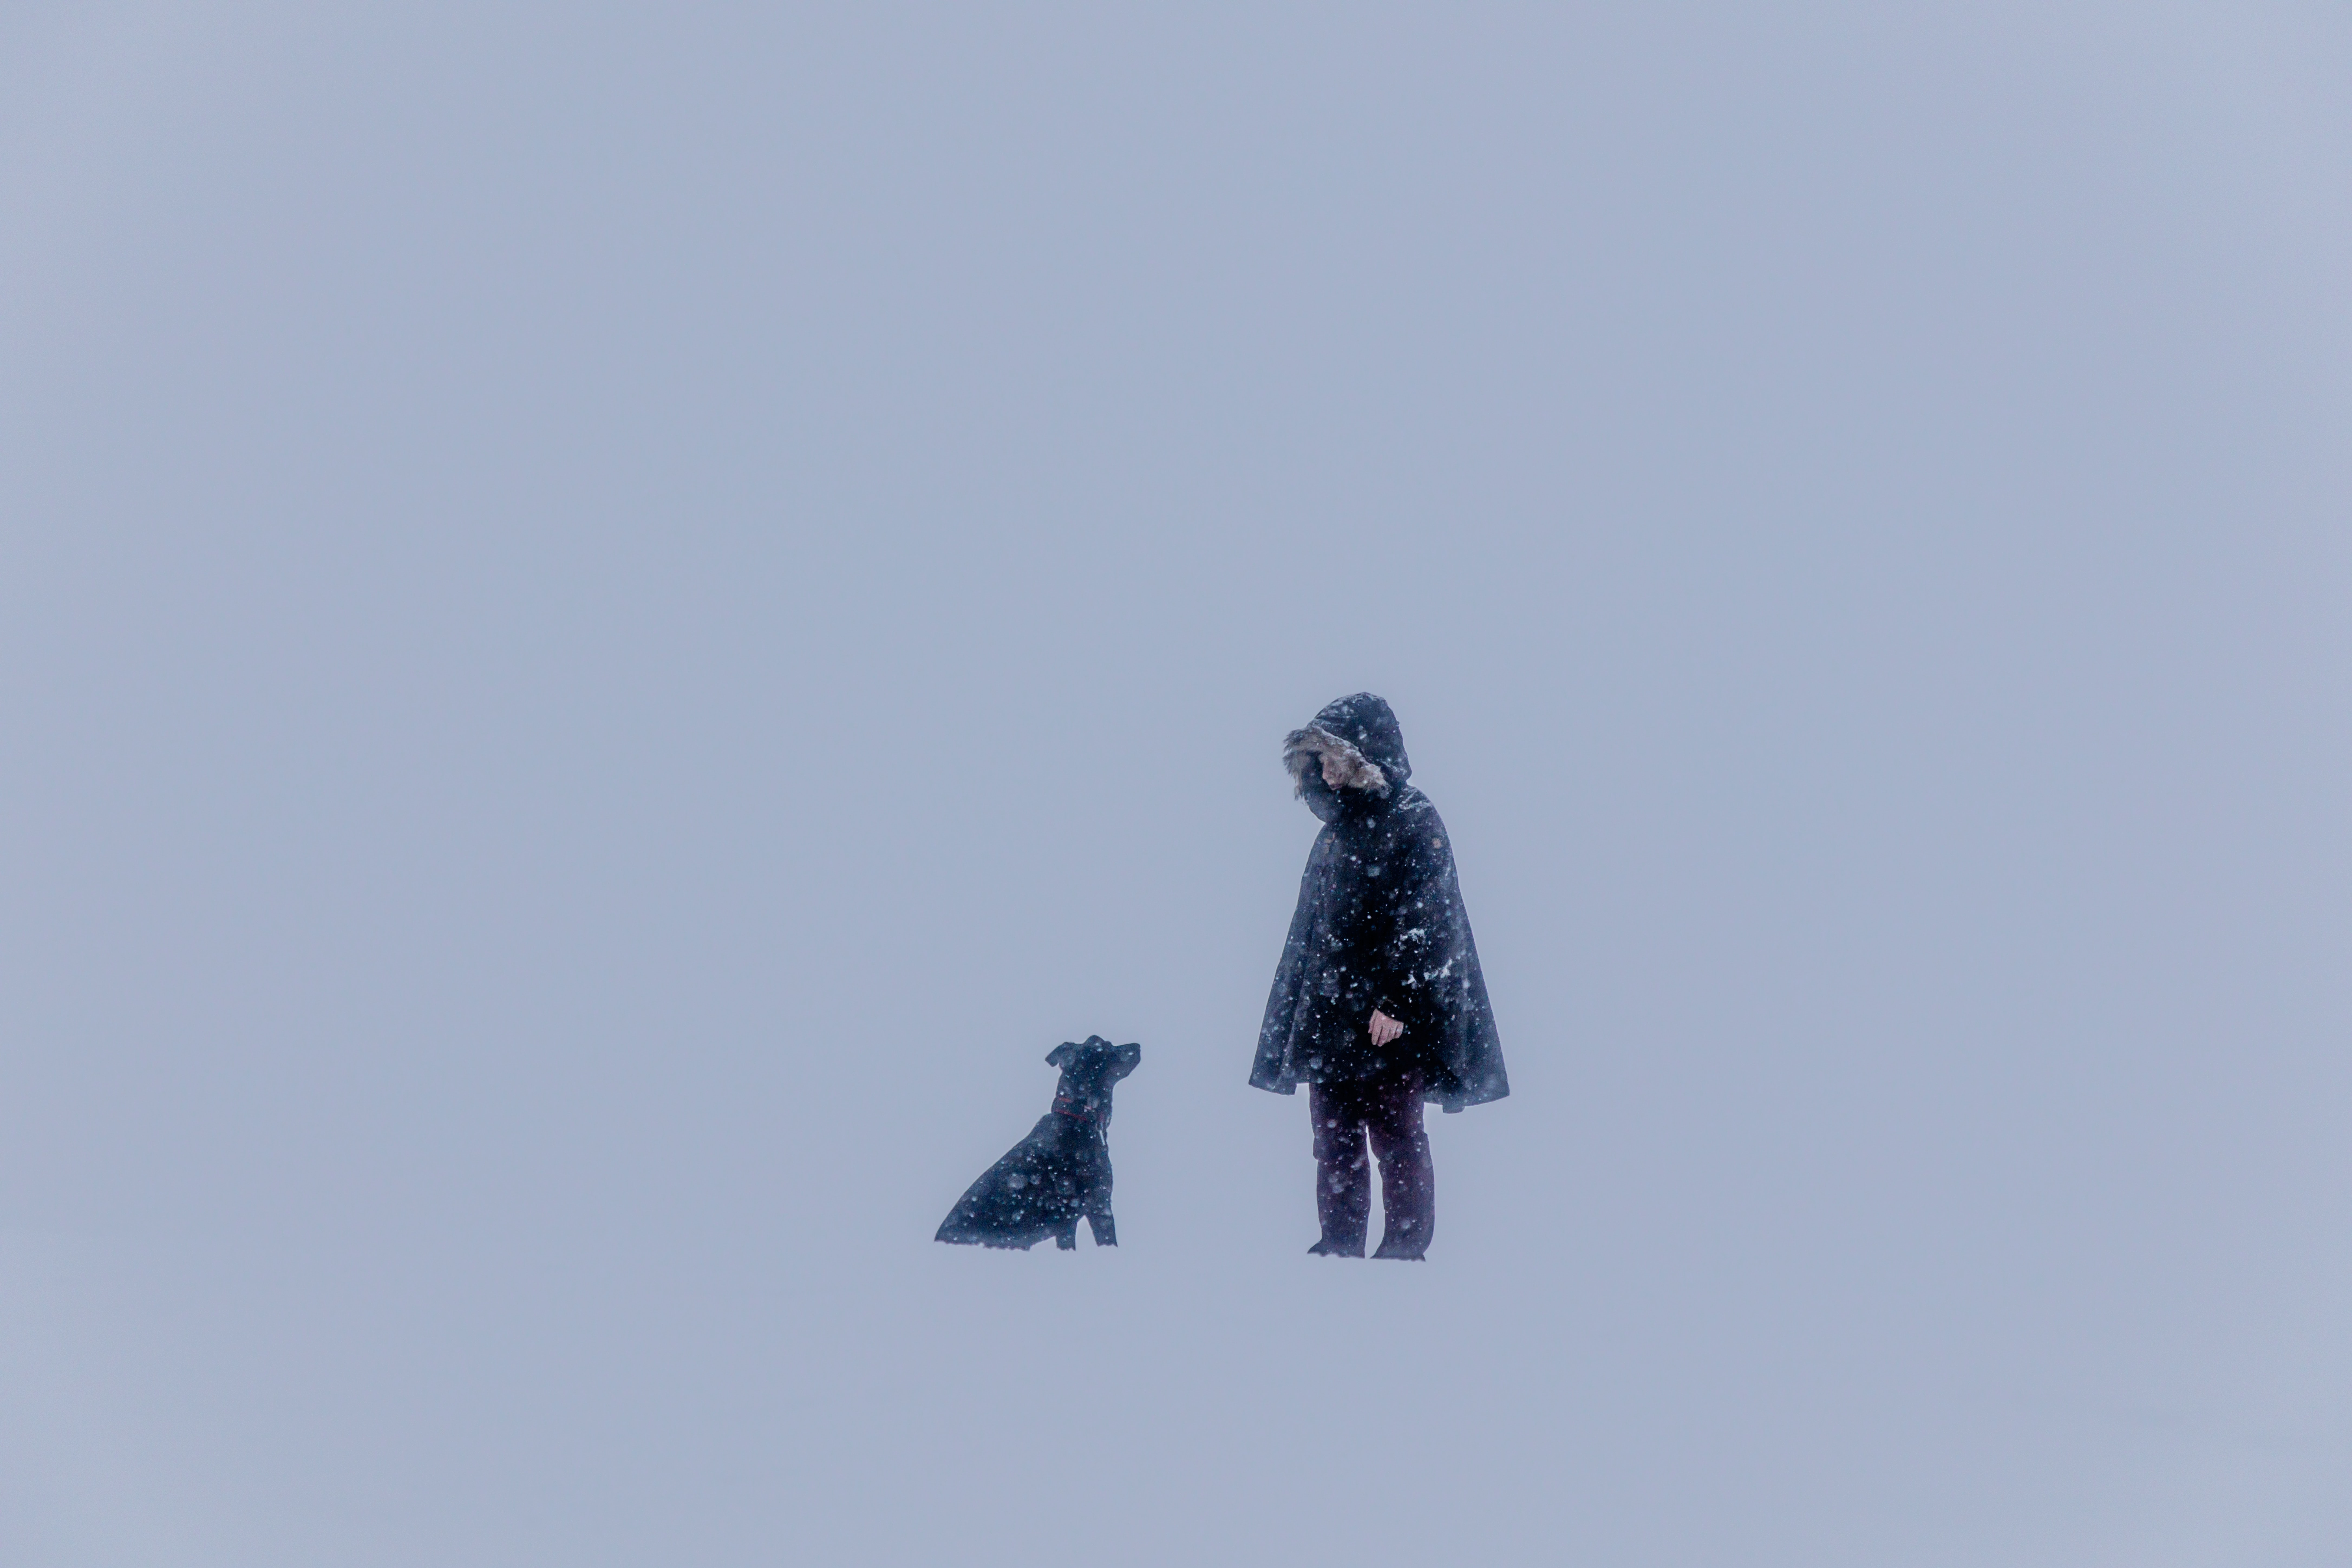 person beside black dog